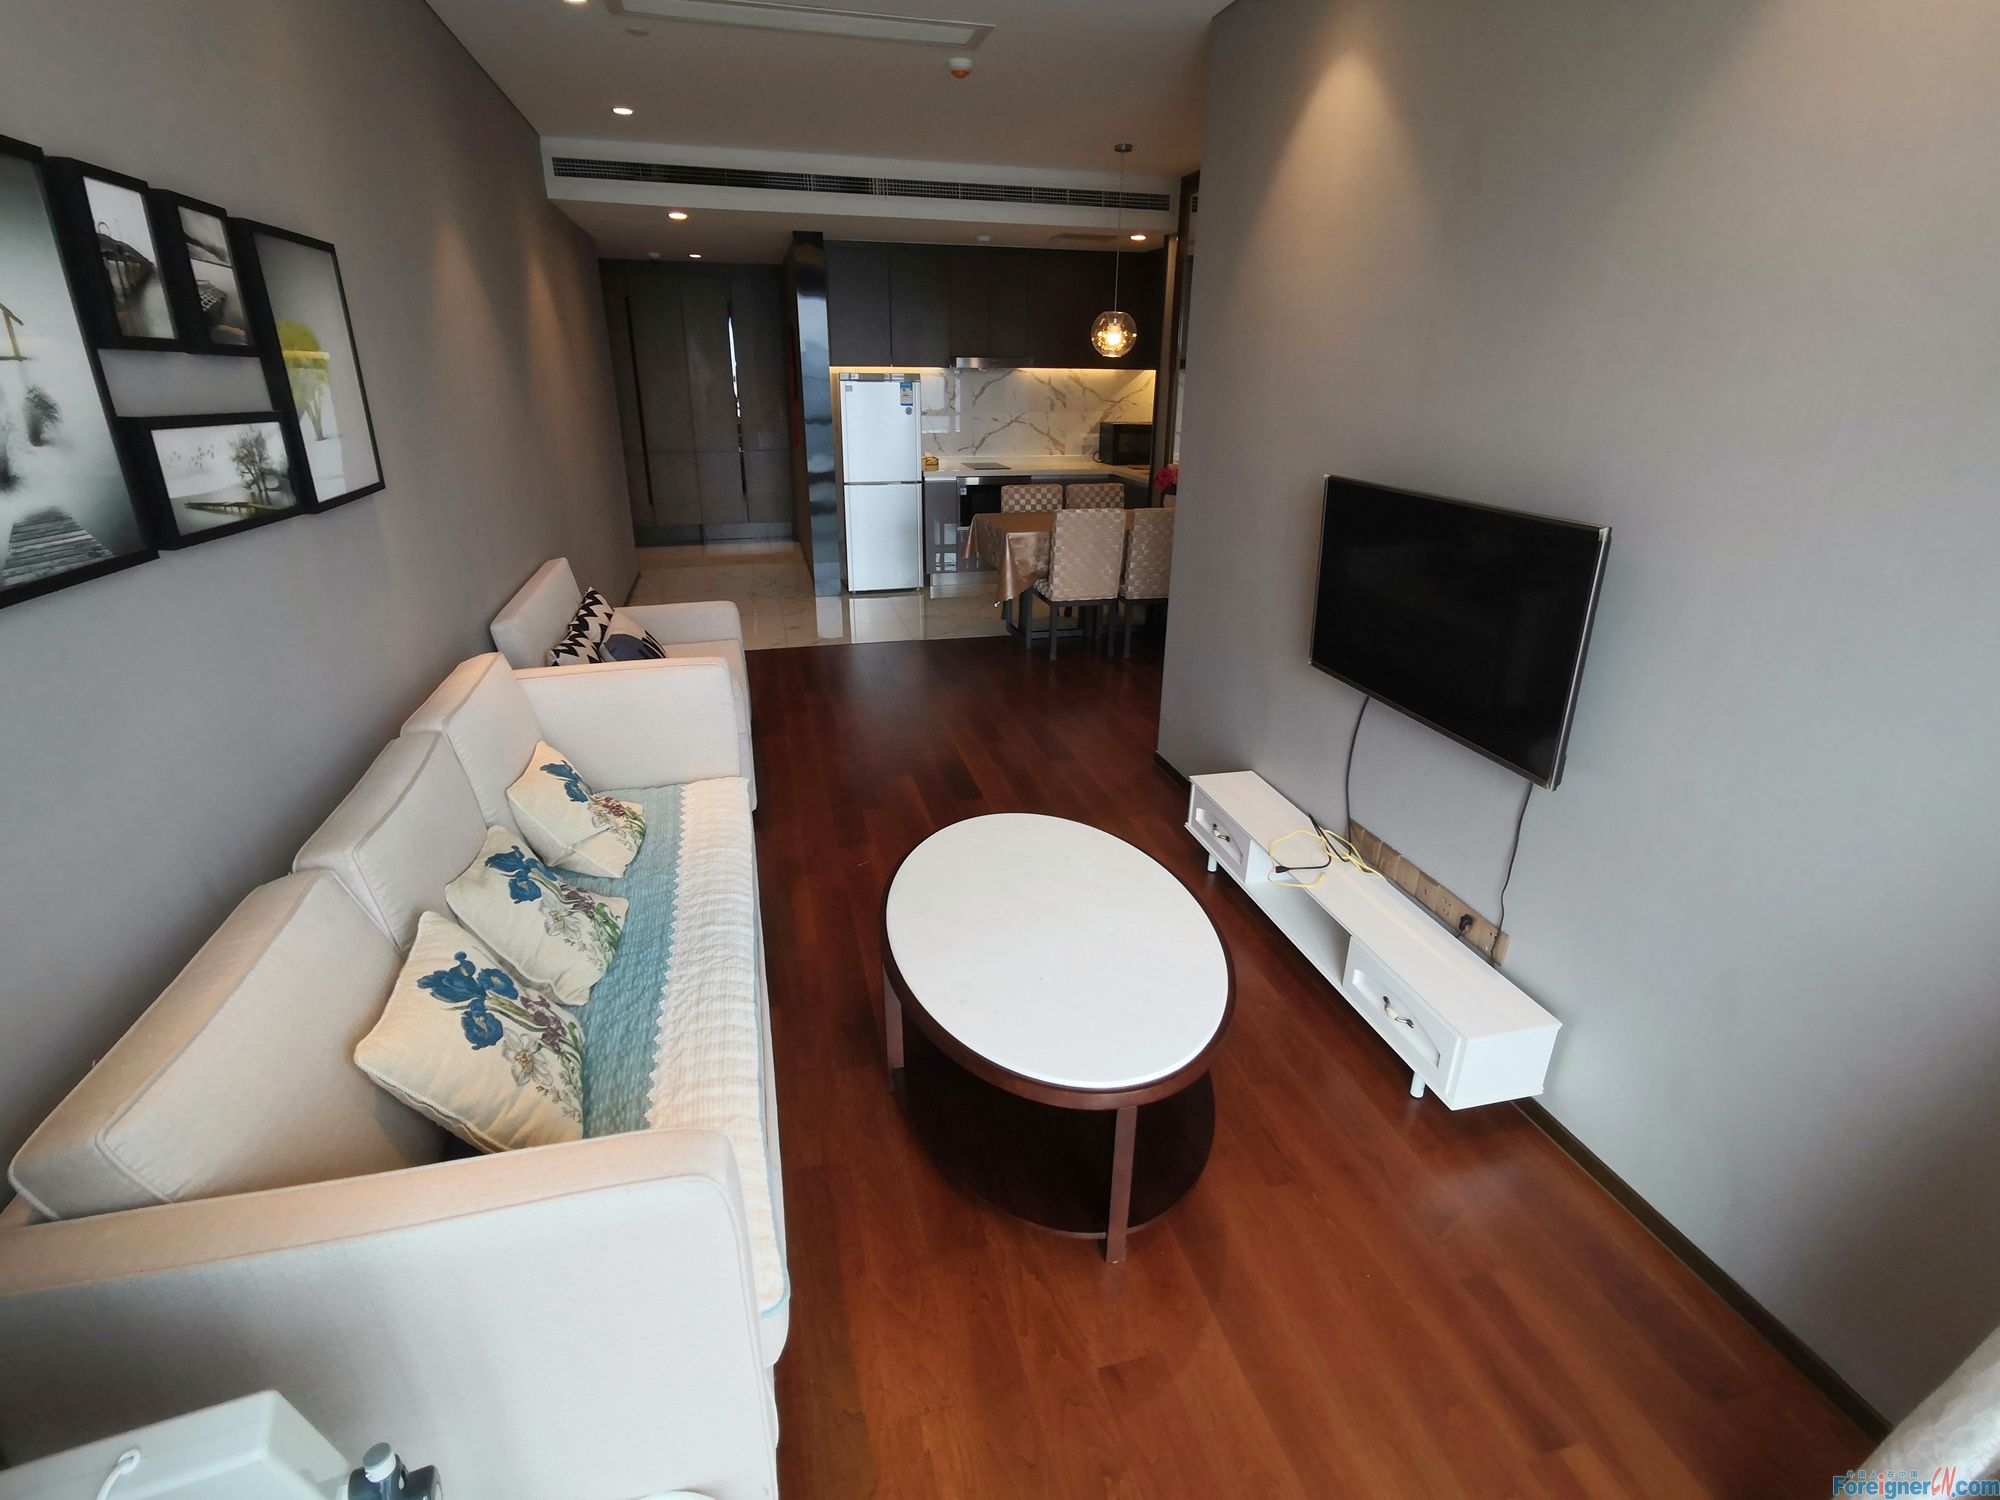 Find an apt in Suzhou-Times Square-1 bdr–elegant decoration-high floor- central AC-convenient traffic